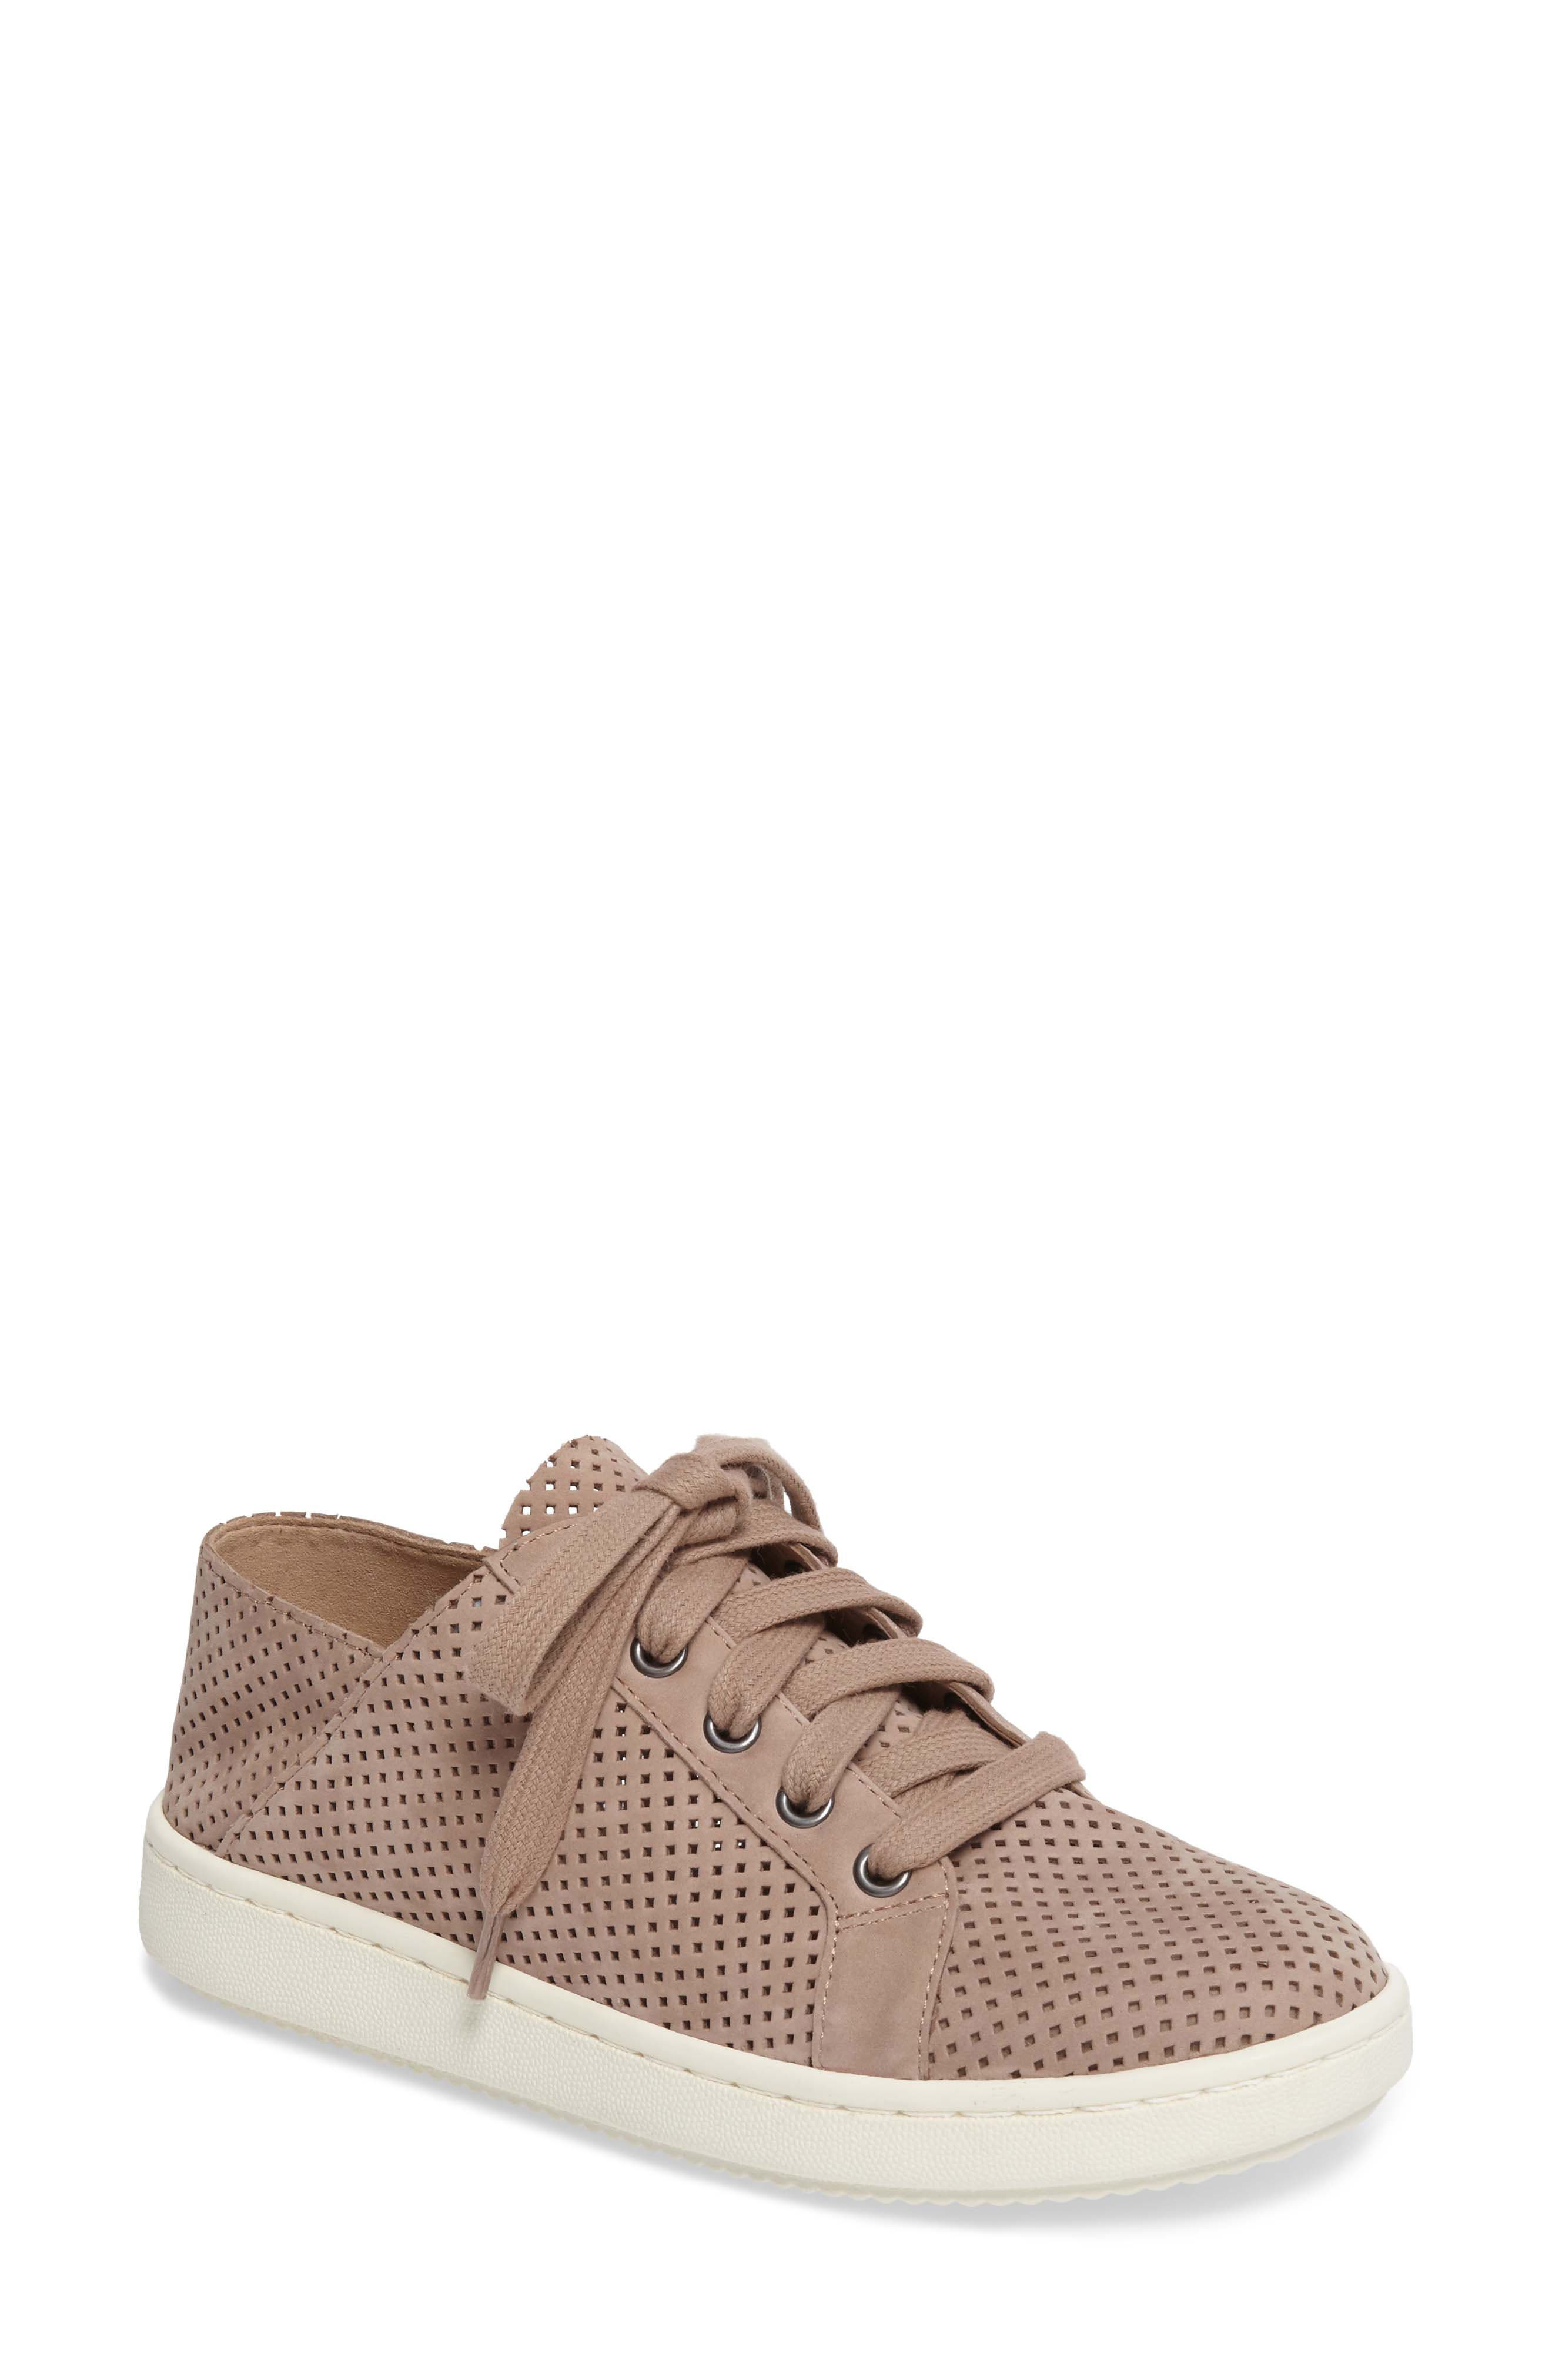 Clifton Perforated Sneaker,                             Main thumbnail 1, color,                             Earth Perforated Leather